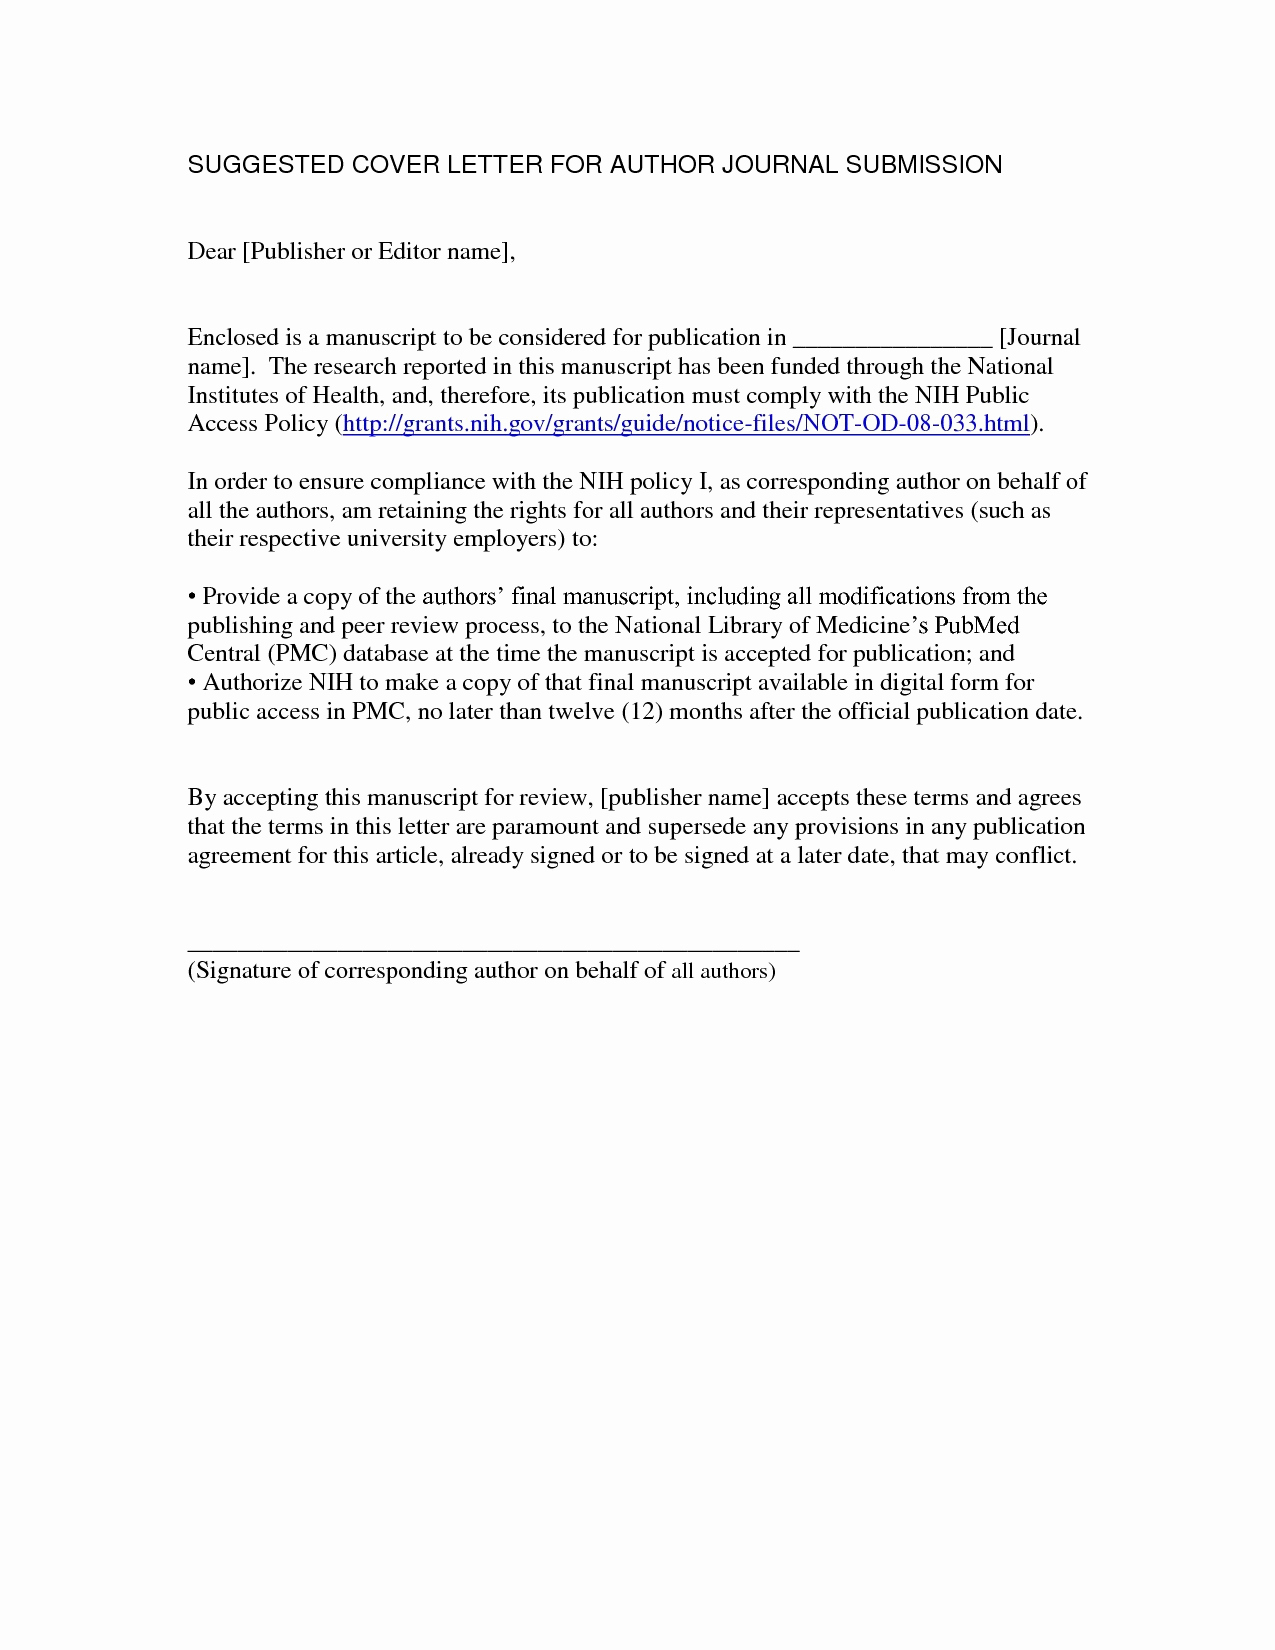 Cover Letter Template for Promotion - Cover Letter for Internal Promotion Example New Letter Template